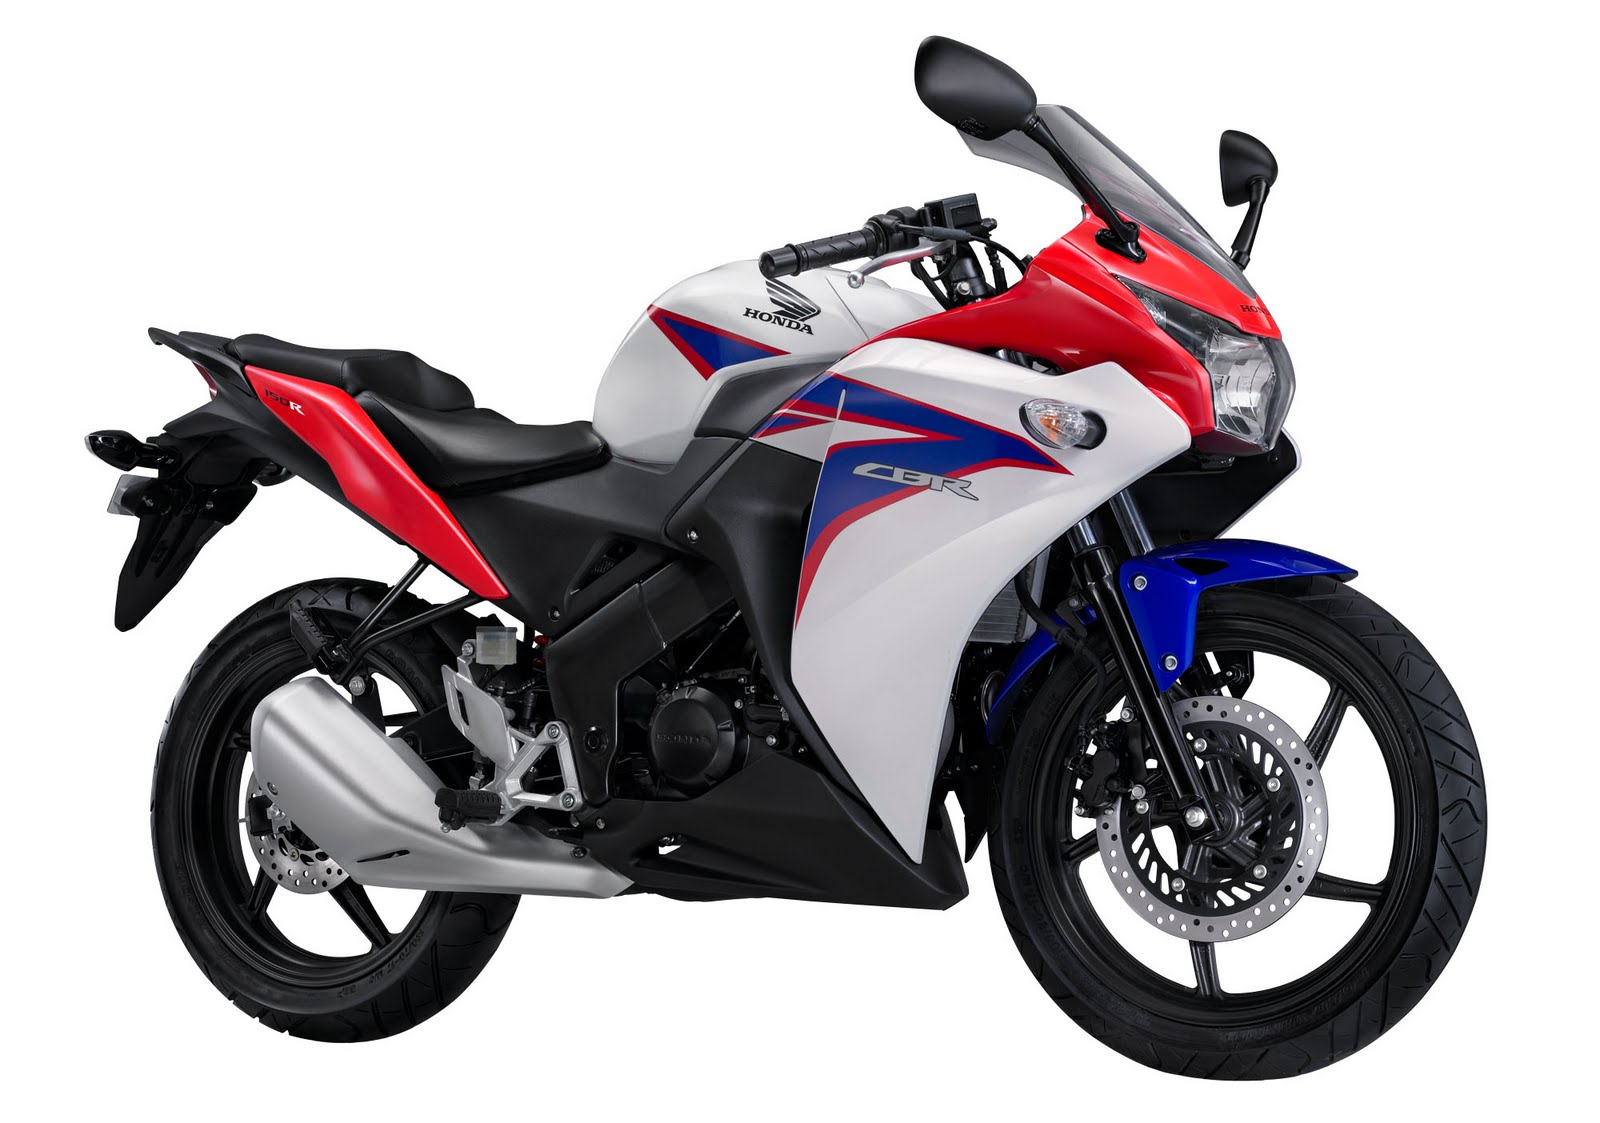 Ahass 366 By Pass Motor 2011 All New Cbr 150r Victory Black Red Boyolali 150 R Meluncur